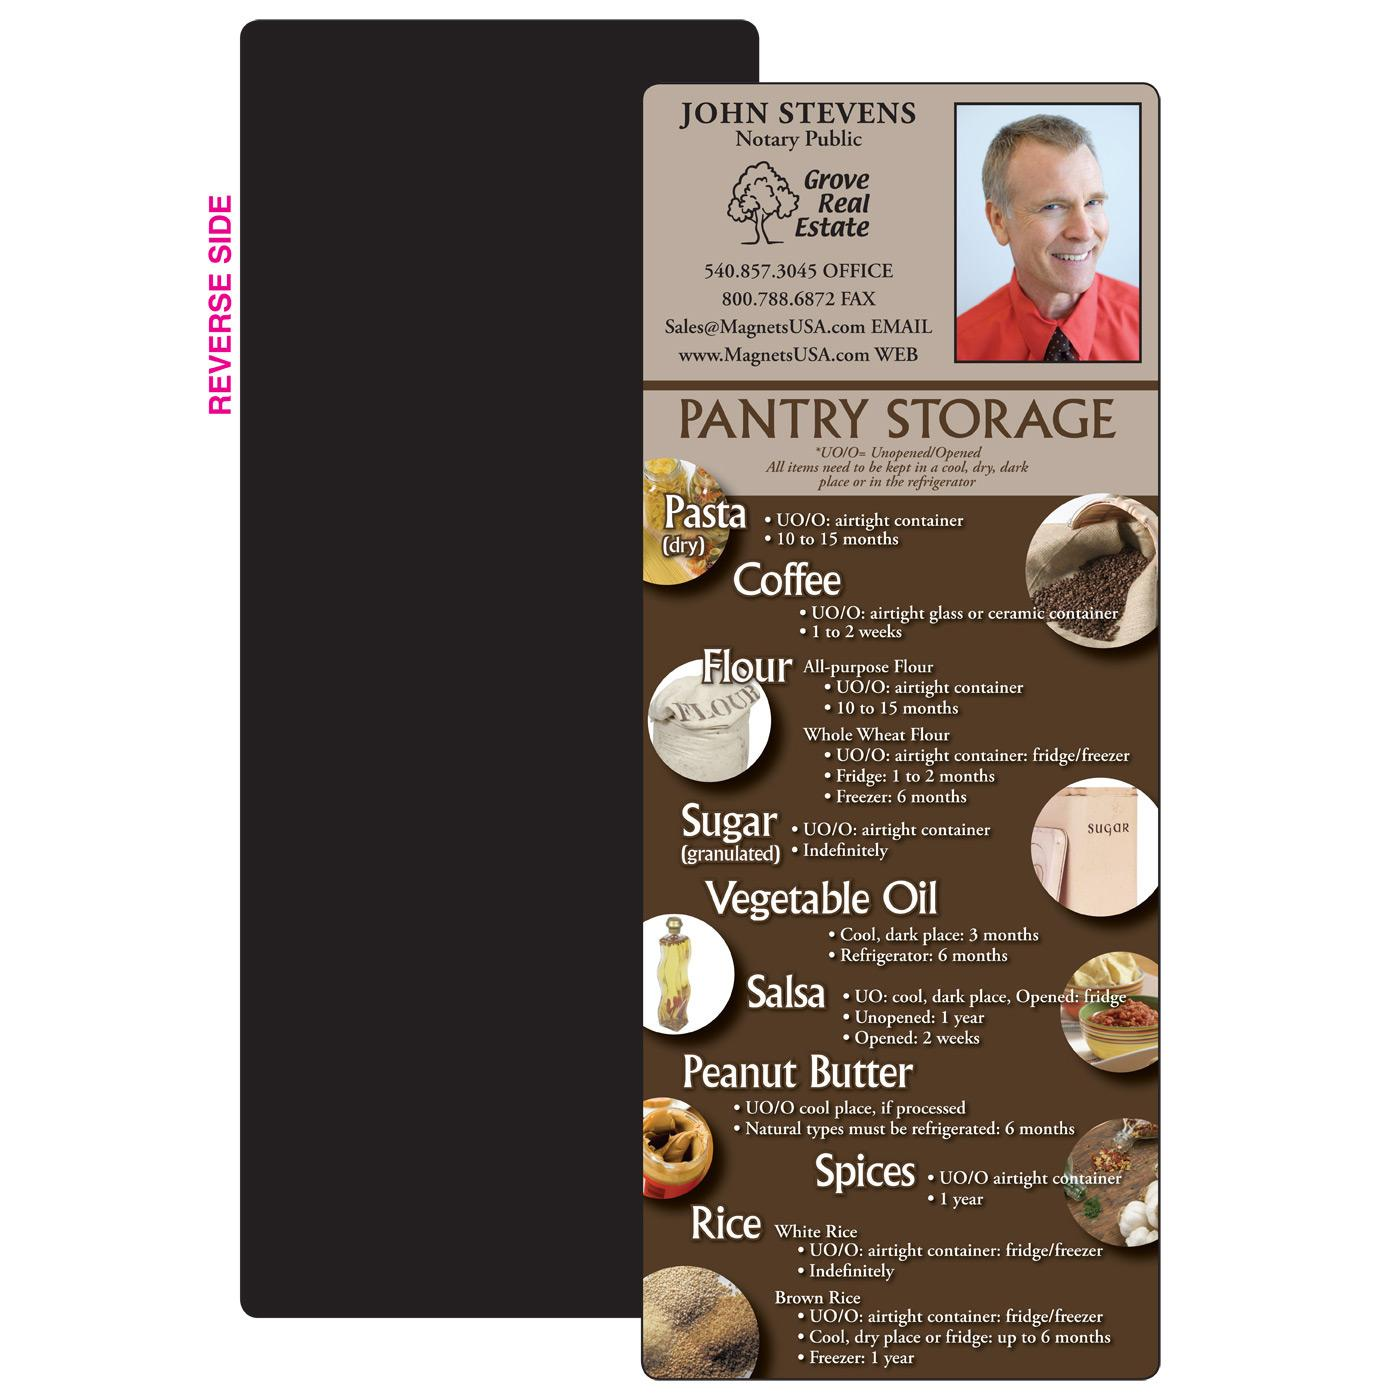 Pantry Storage Guidelines Magnet